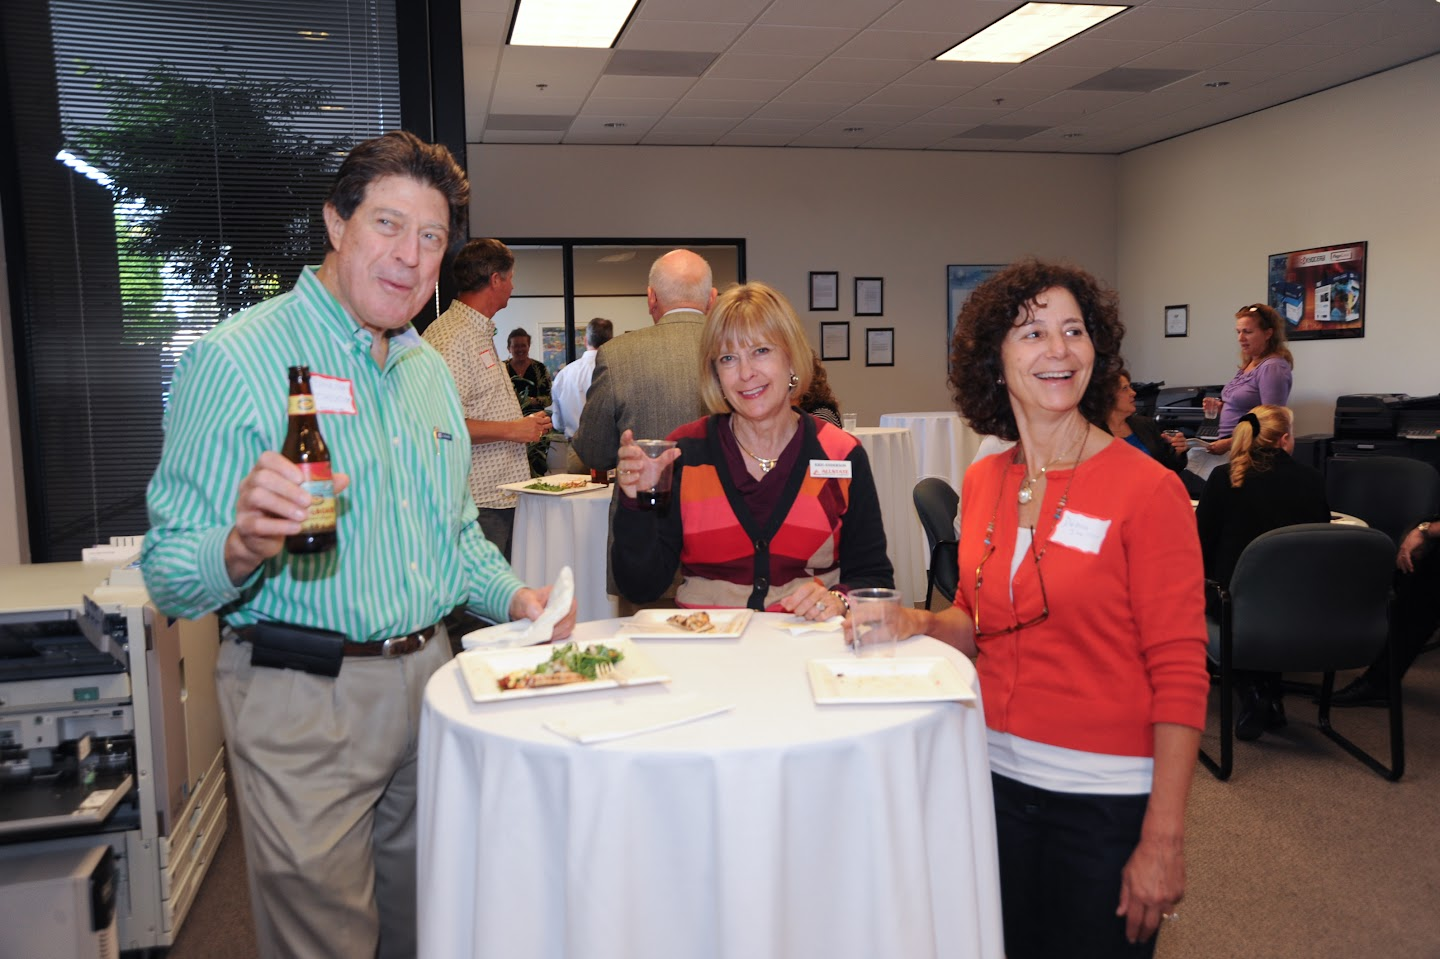 Rotary Means Business at Discovery Office with Rosso Pizzeria - DSC_6782.jpg